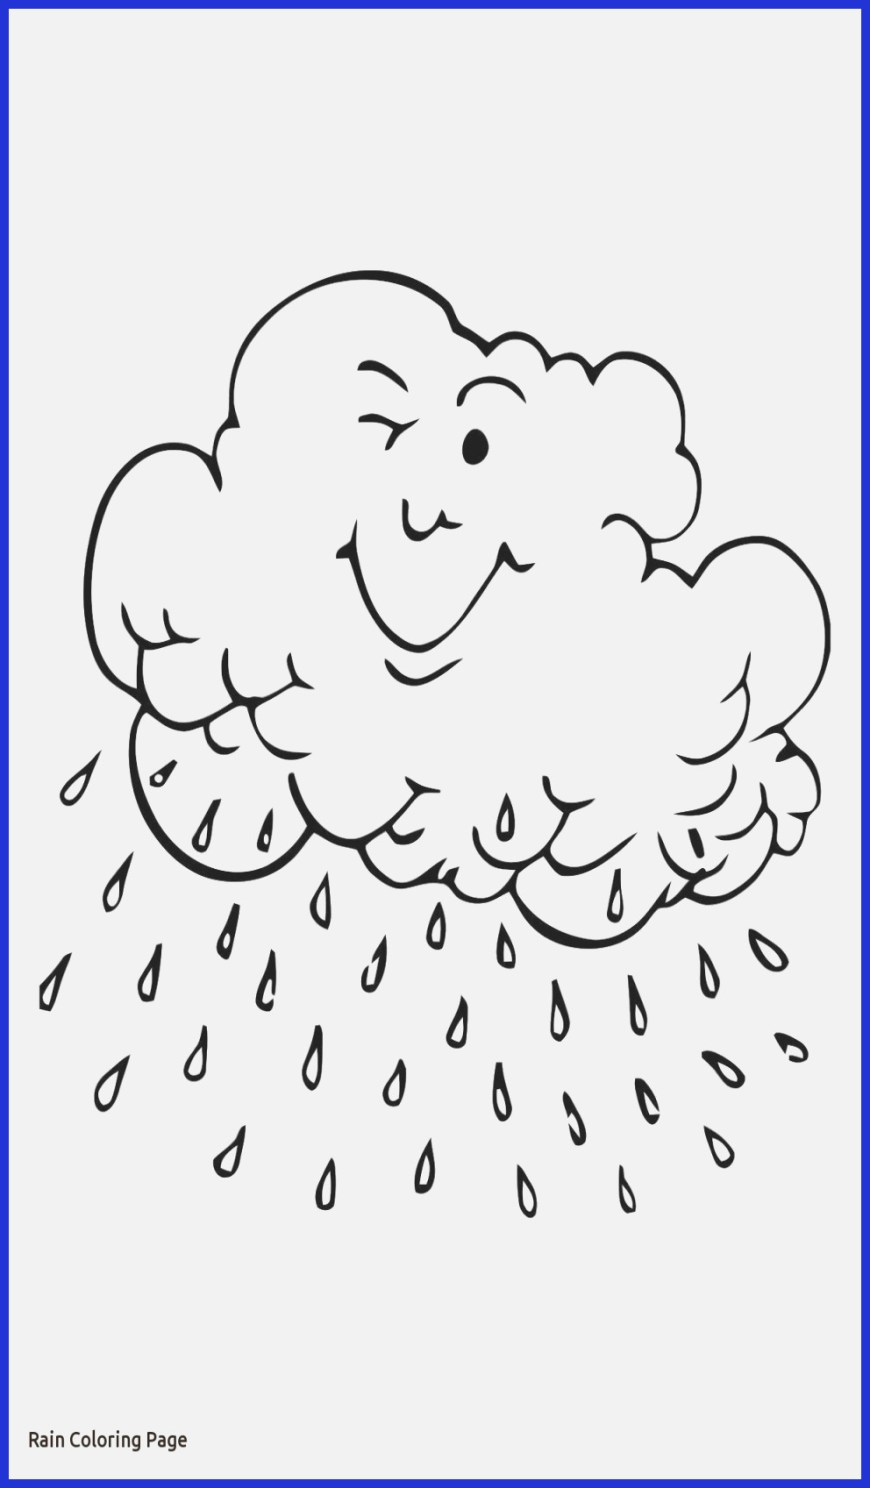 Rain Coloring Page Coloring Pages Weather Coloring Pages Printable Easy And Fun Rainy